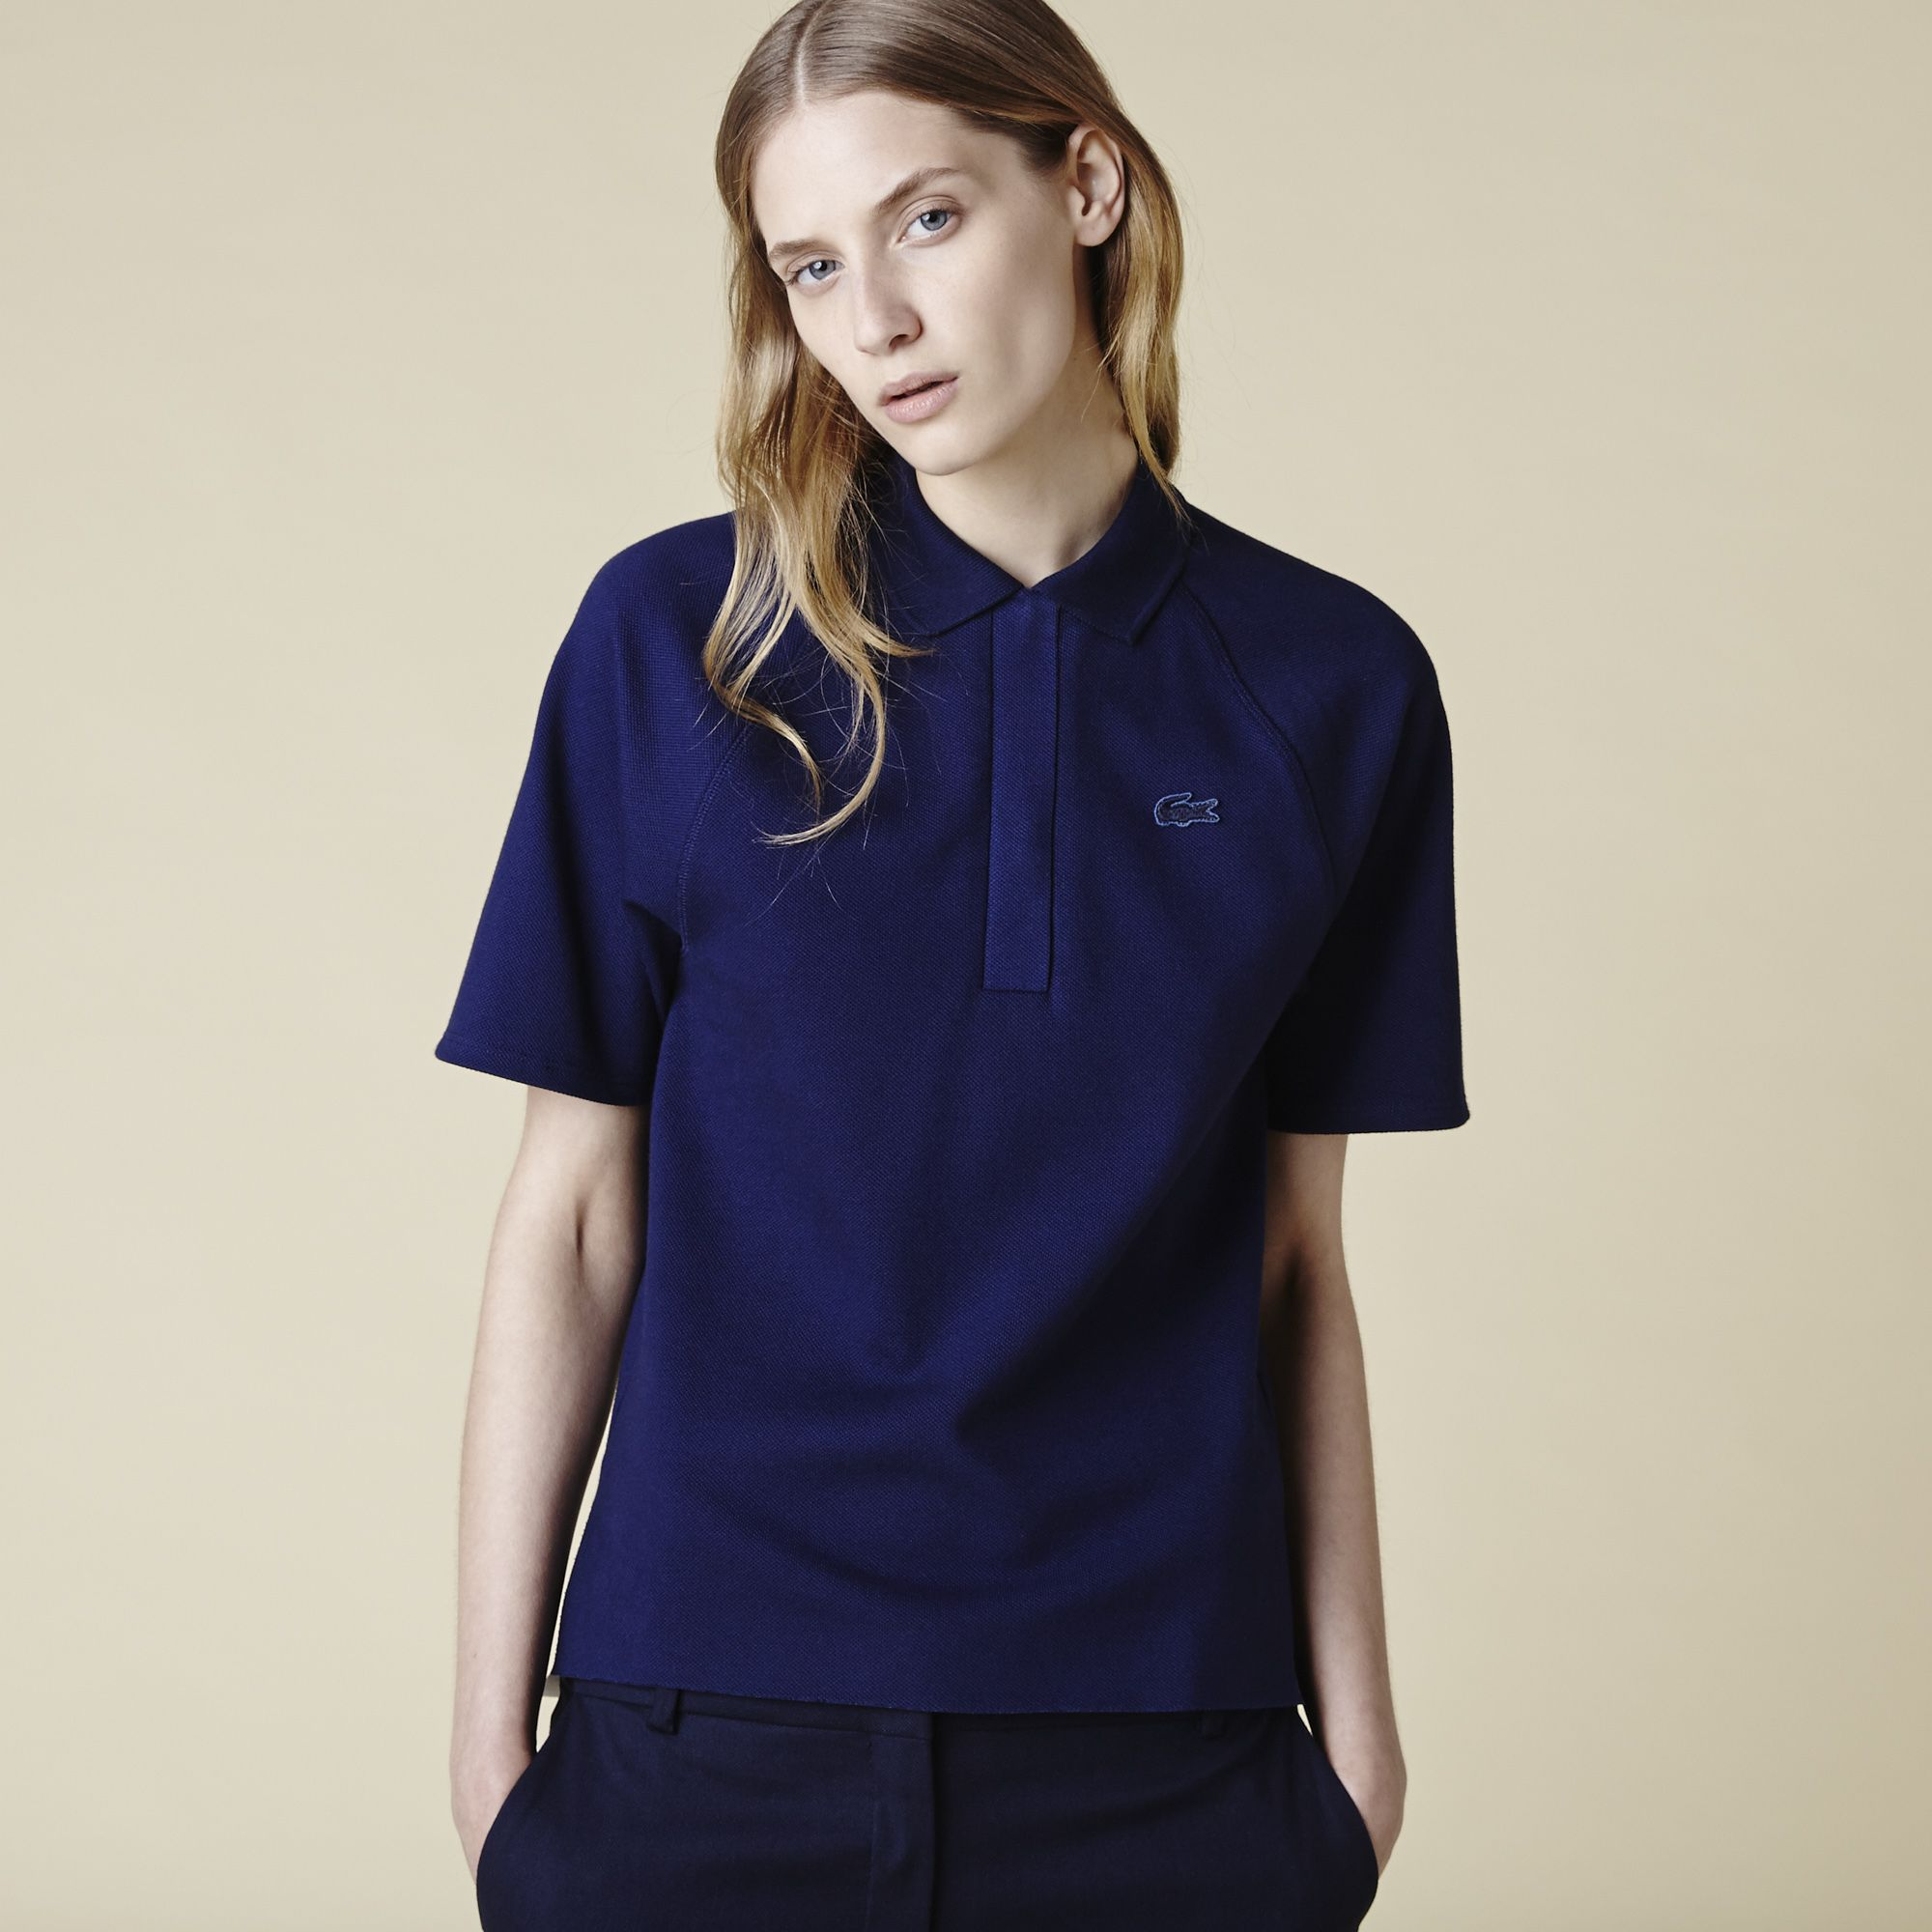 Navy blue/white - Polo with piped button placket | LACOSTE